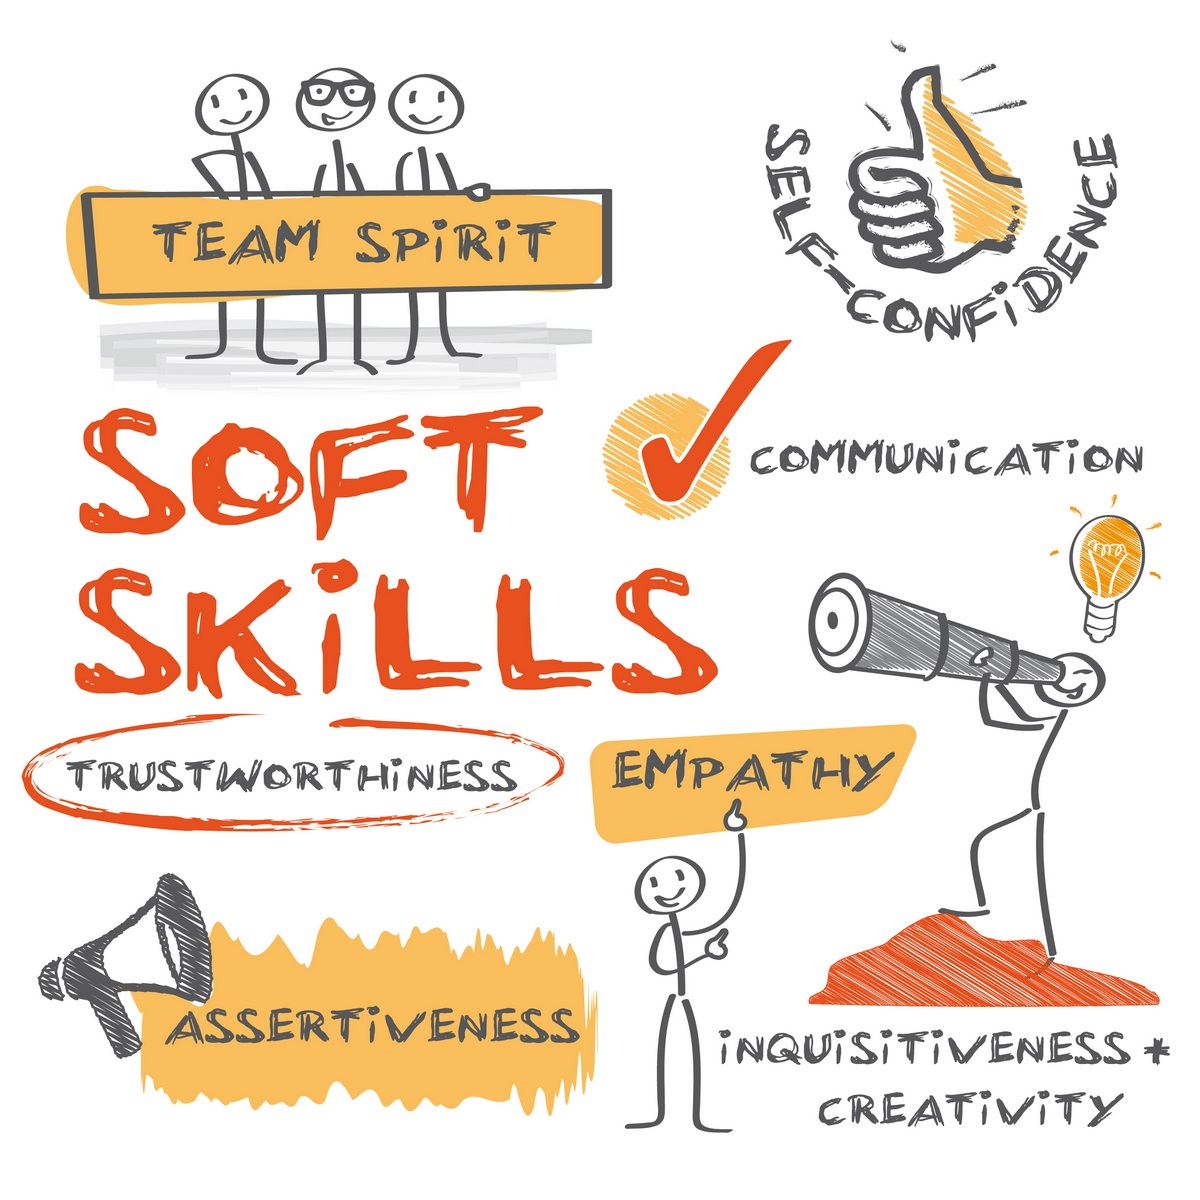 the importance of leadership skills marketing skills and financial skills in starting a business wit Importance of communication skills in business, workplace & profession life communication is a most important skill communication skills are not only needed in daily personal life, but also required in the profession, workplace and in business.